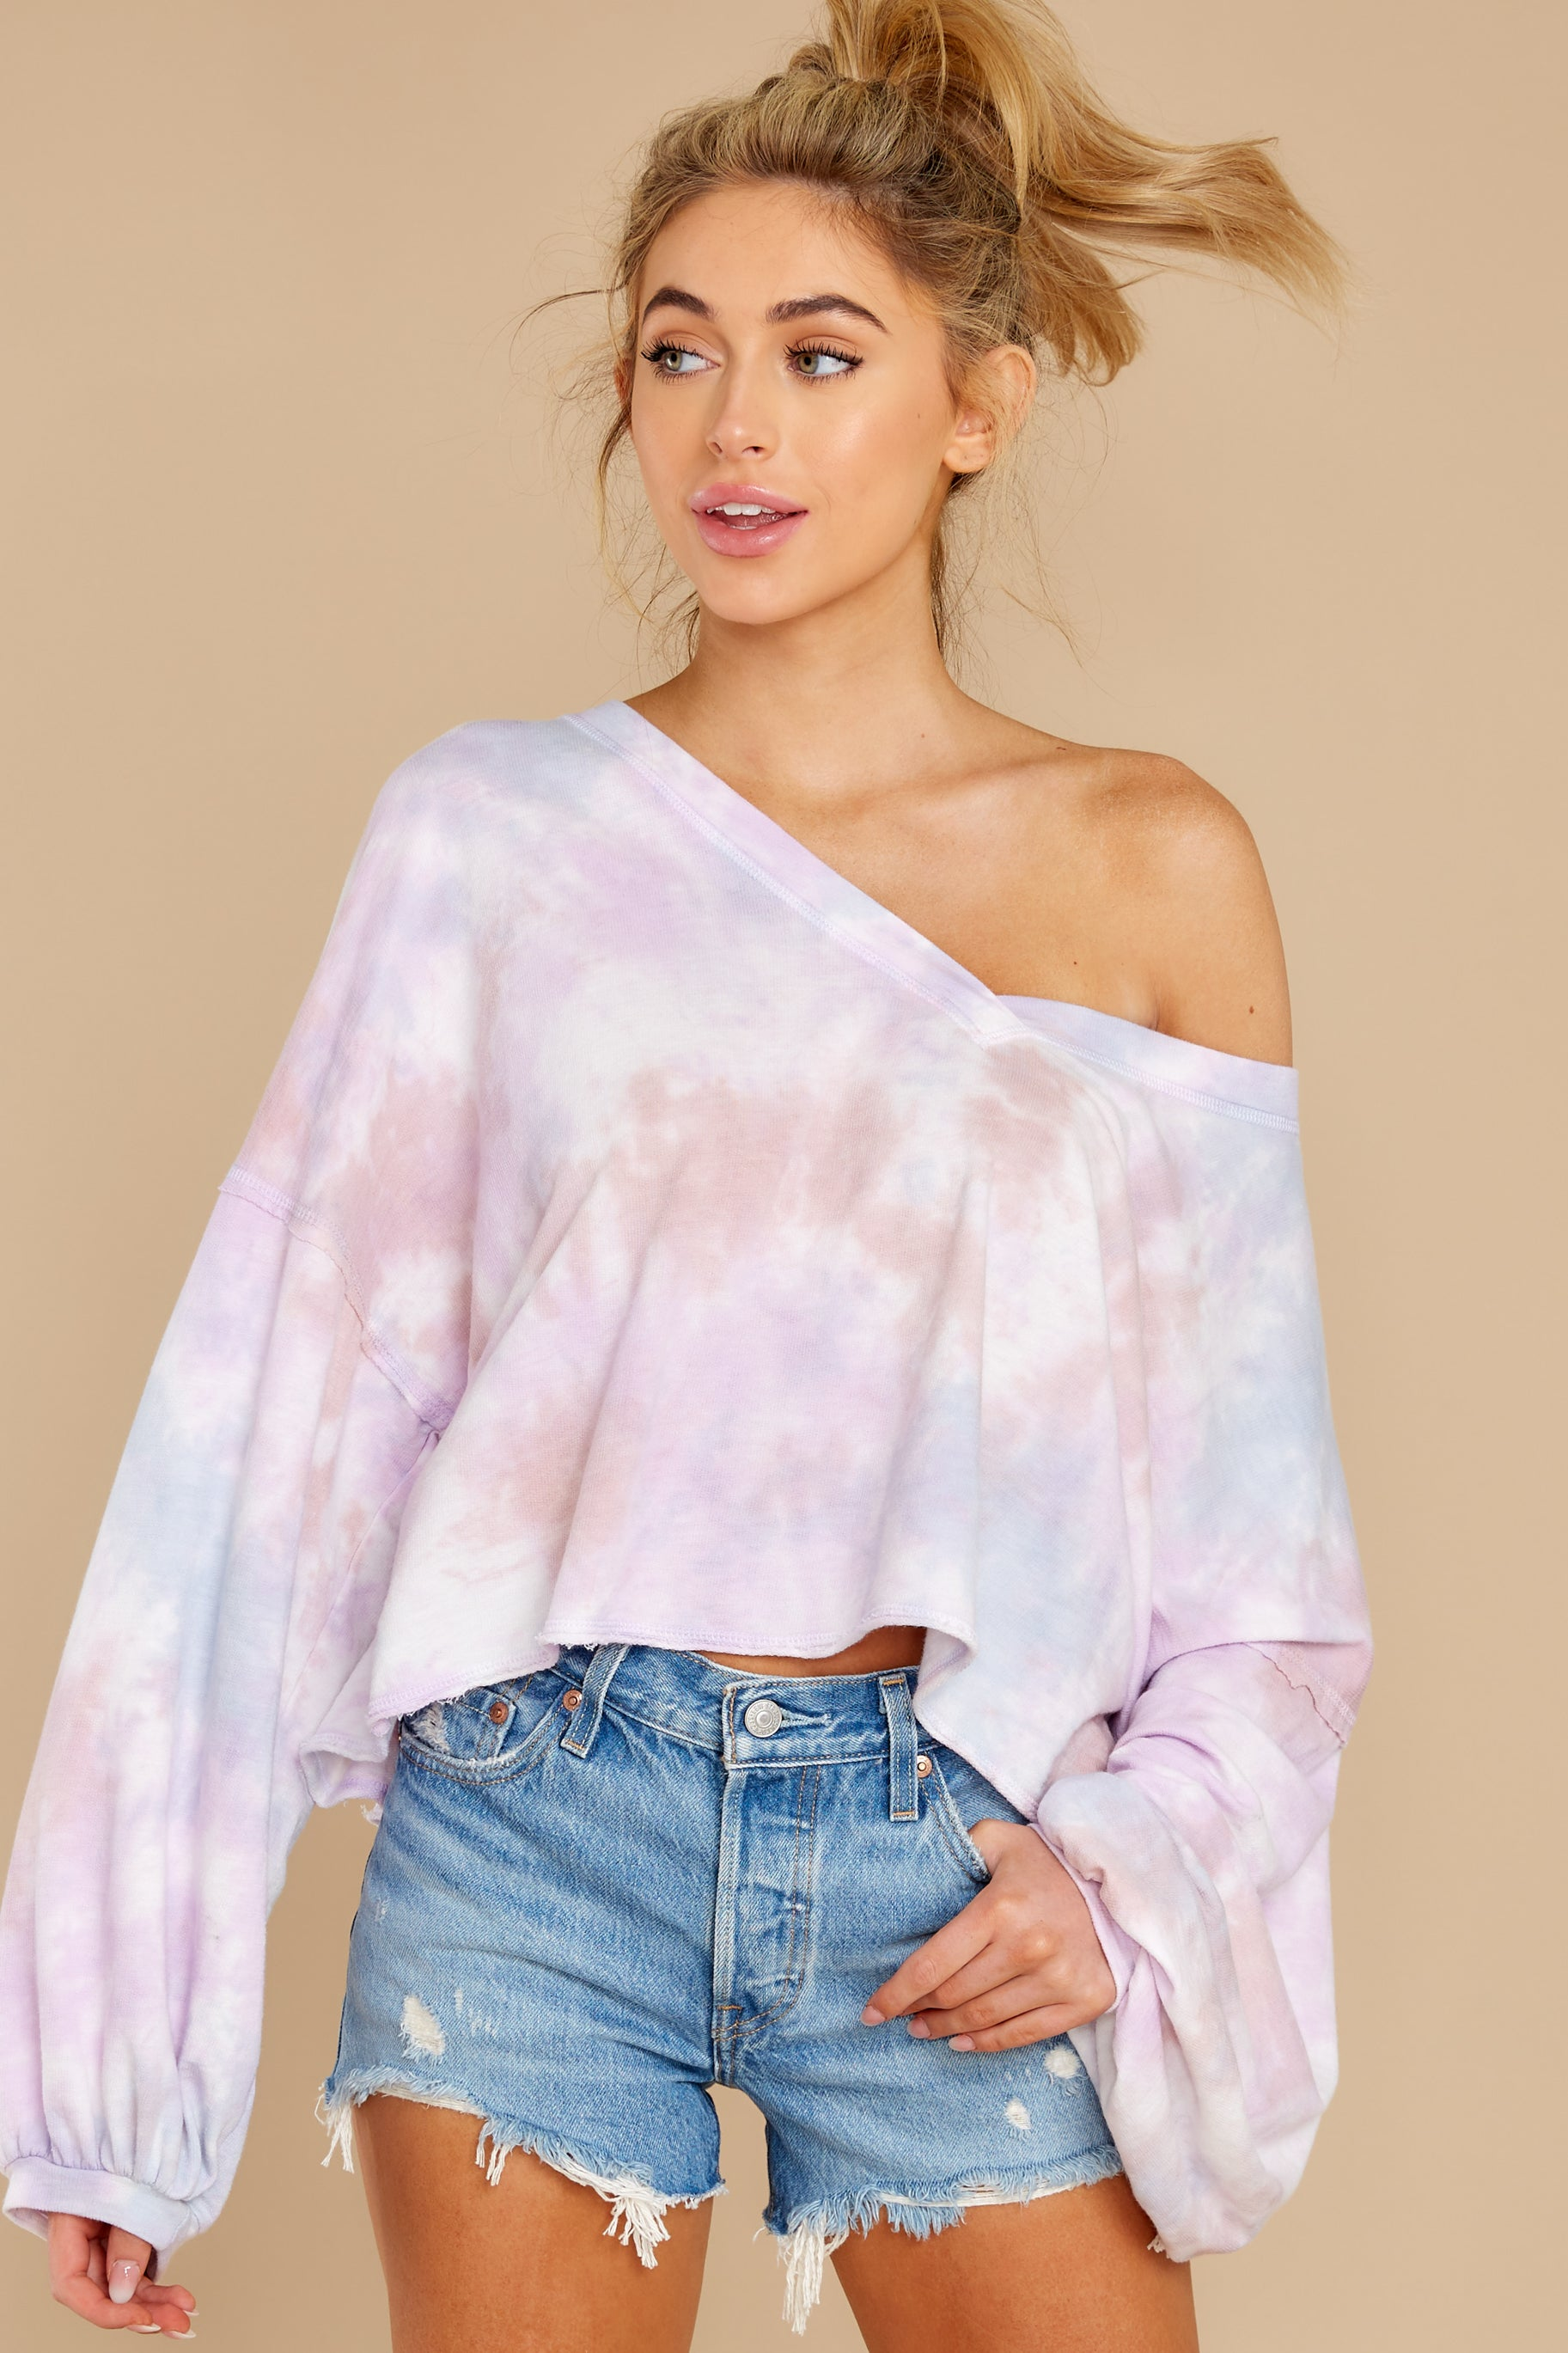 4 Feel Like Flying Lavender Multi Tie Dye Top at reddress.com